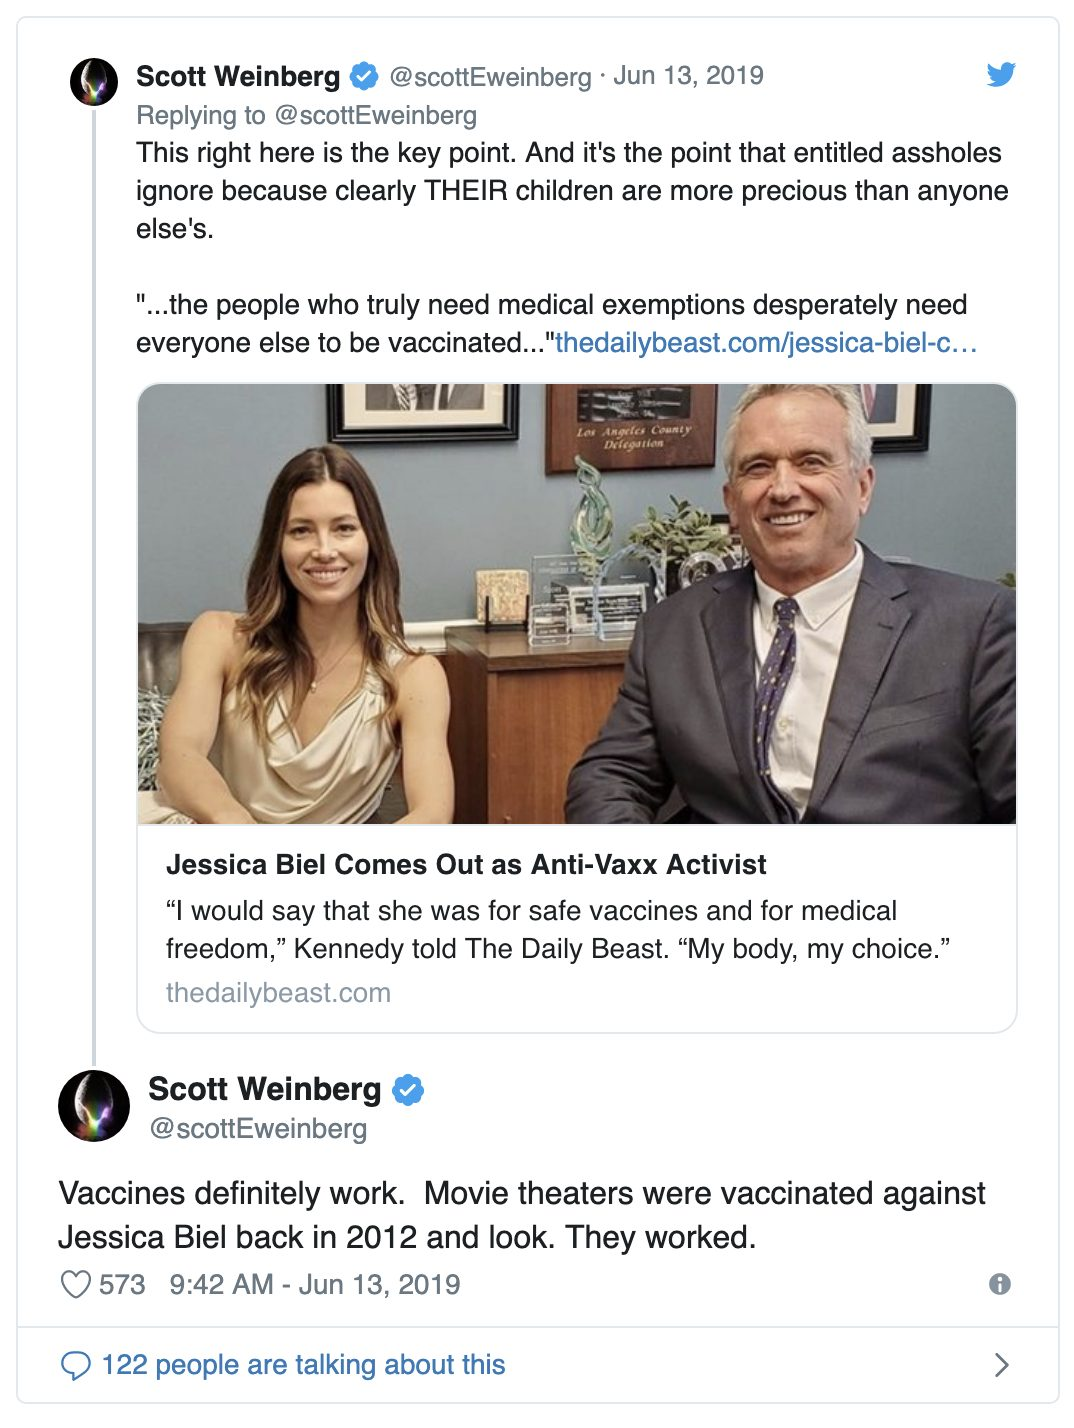 jessica biel is an anti-vaxxer now (according to the internet)